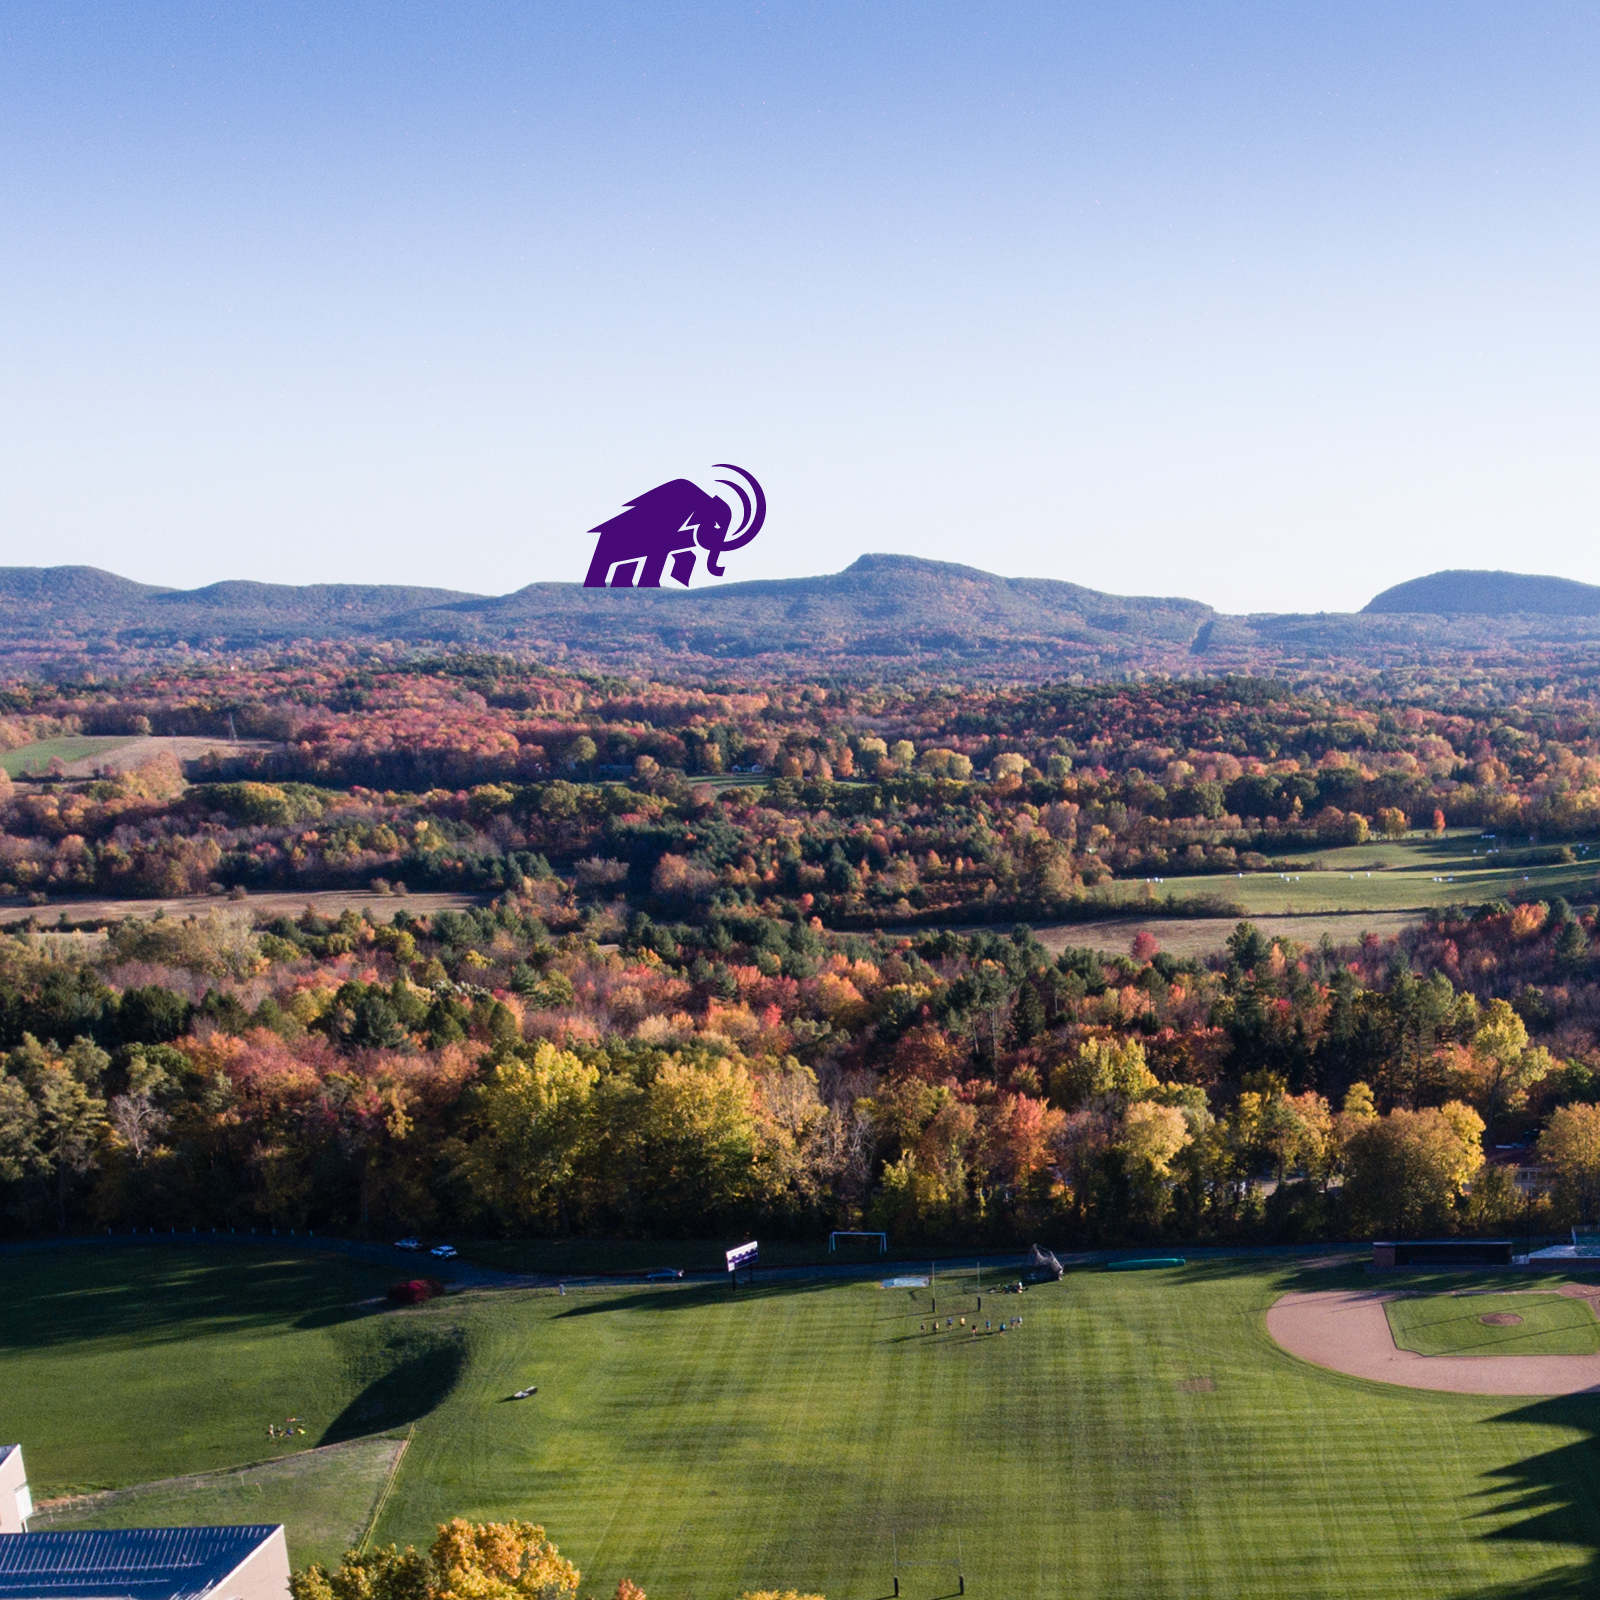 Mammoth walking across the range in an aerial photo of campus